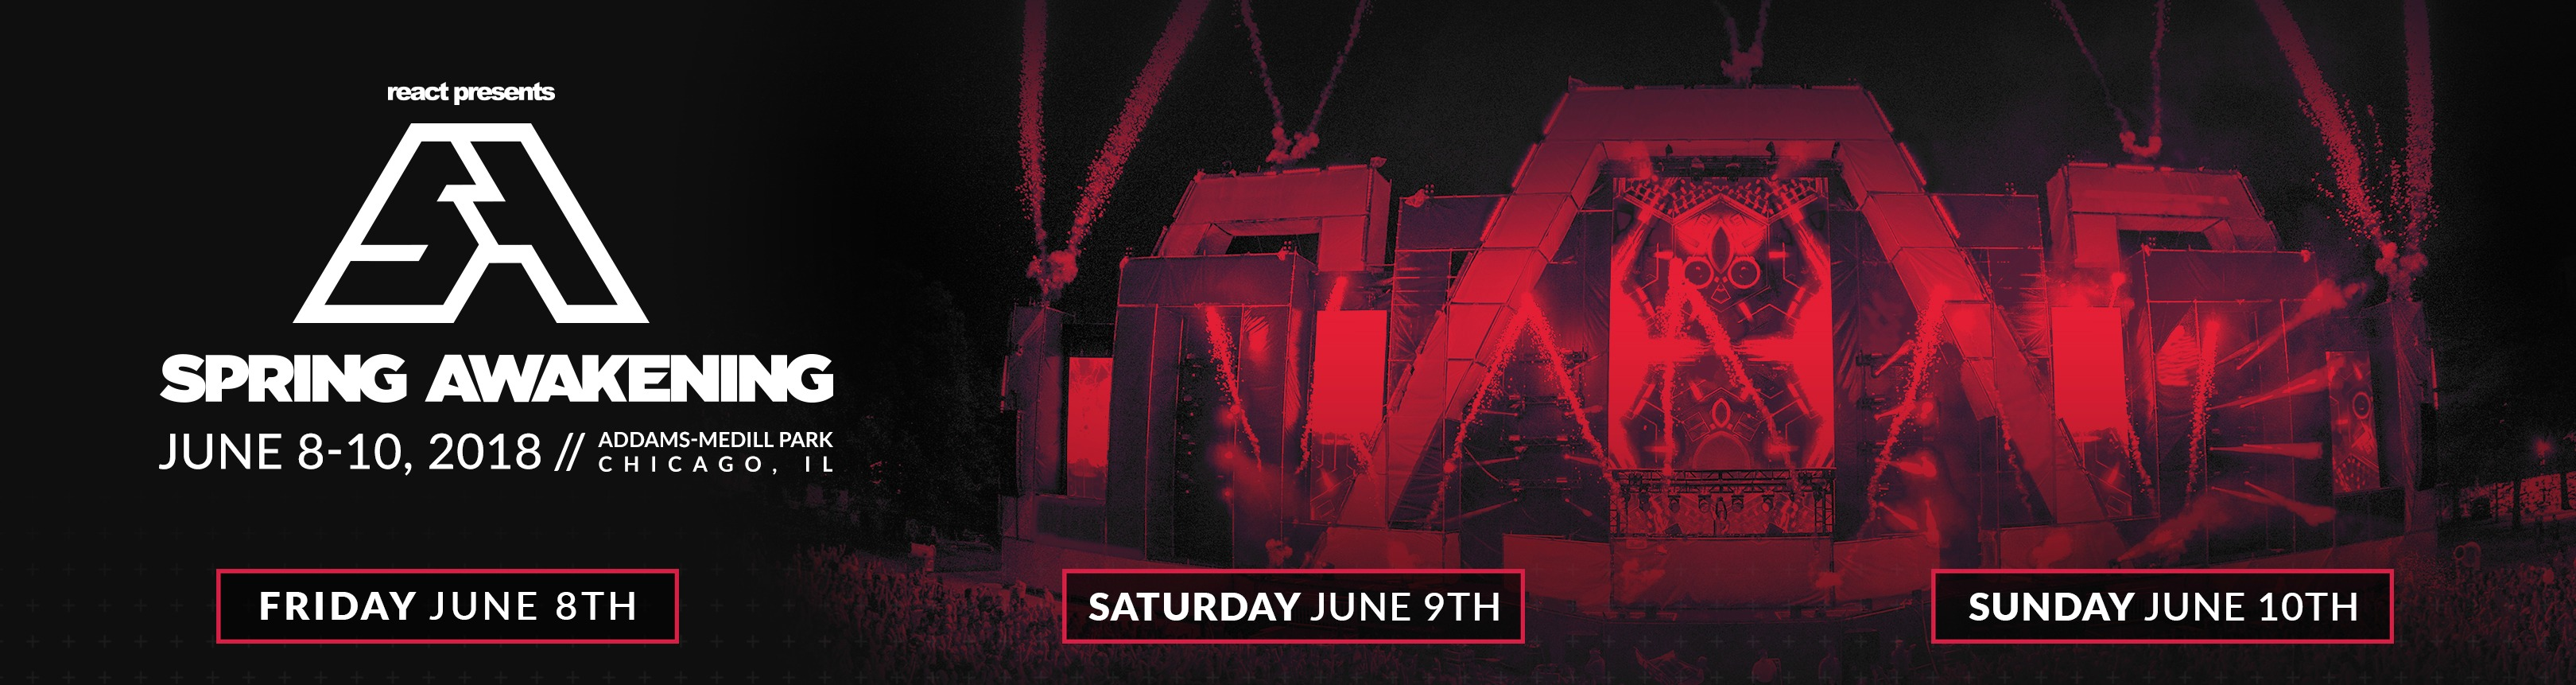 SPRING AWAKENING MUSIC FESTIVAL is thrilled to announce the daily artist lineup and release single day tickets for 2018. Single day tickets start at $69 for GA and $129 for VIP, while three-day passes remain reasonably priced at $199 for GA and $289 for VIP.